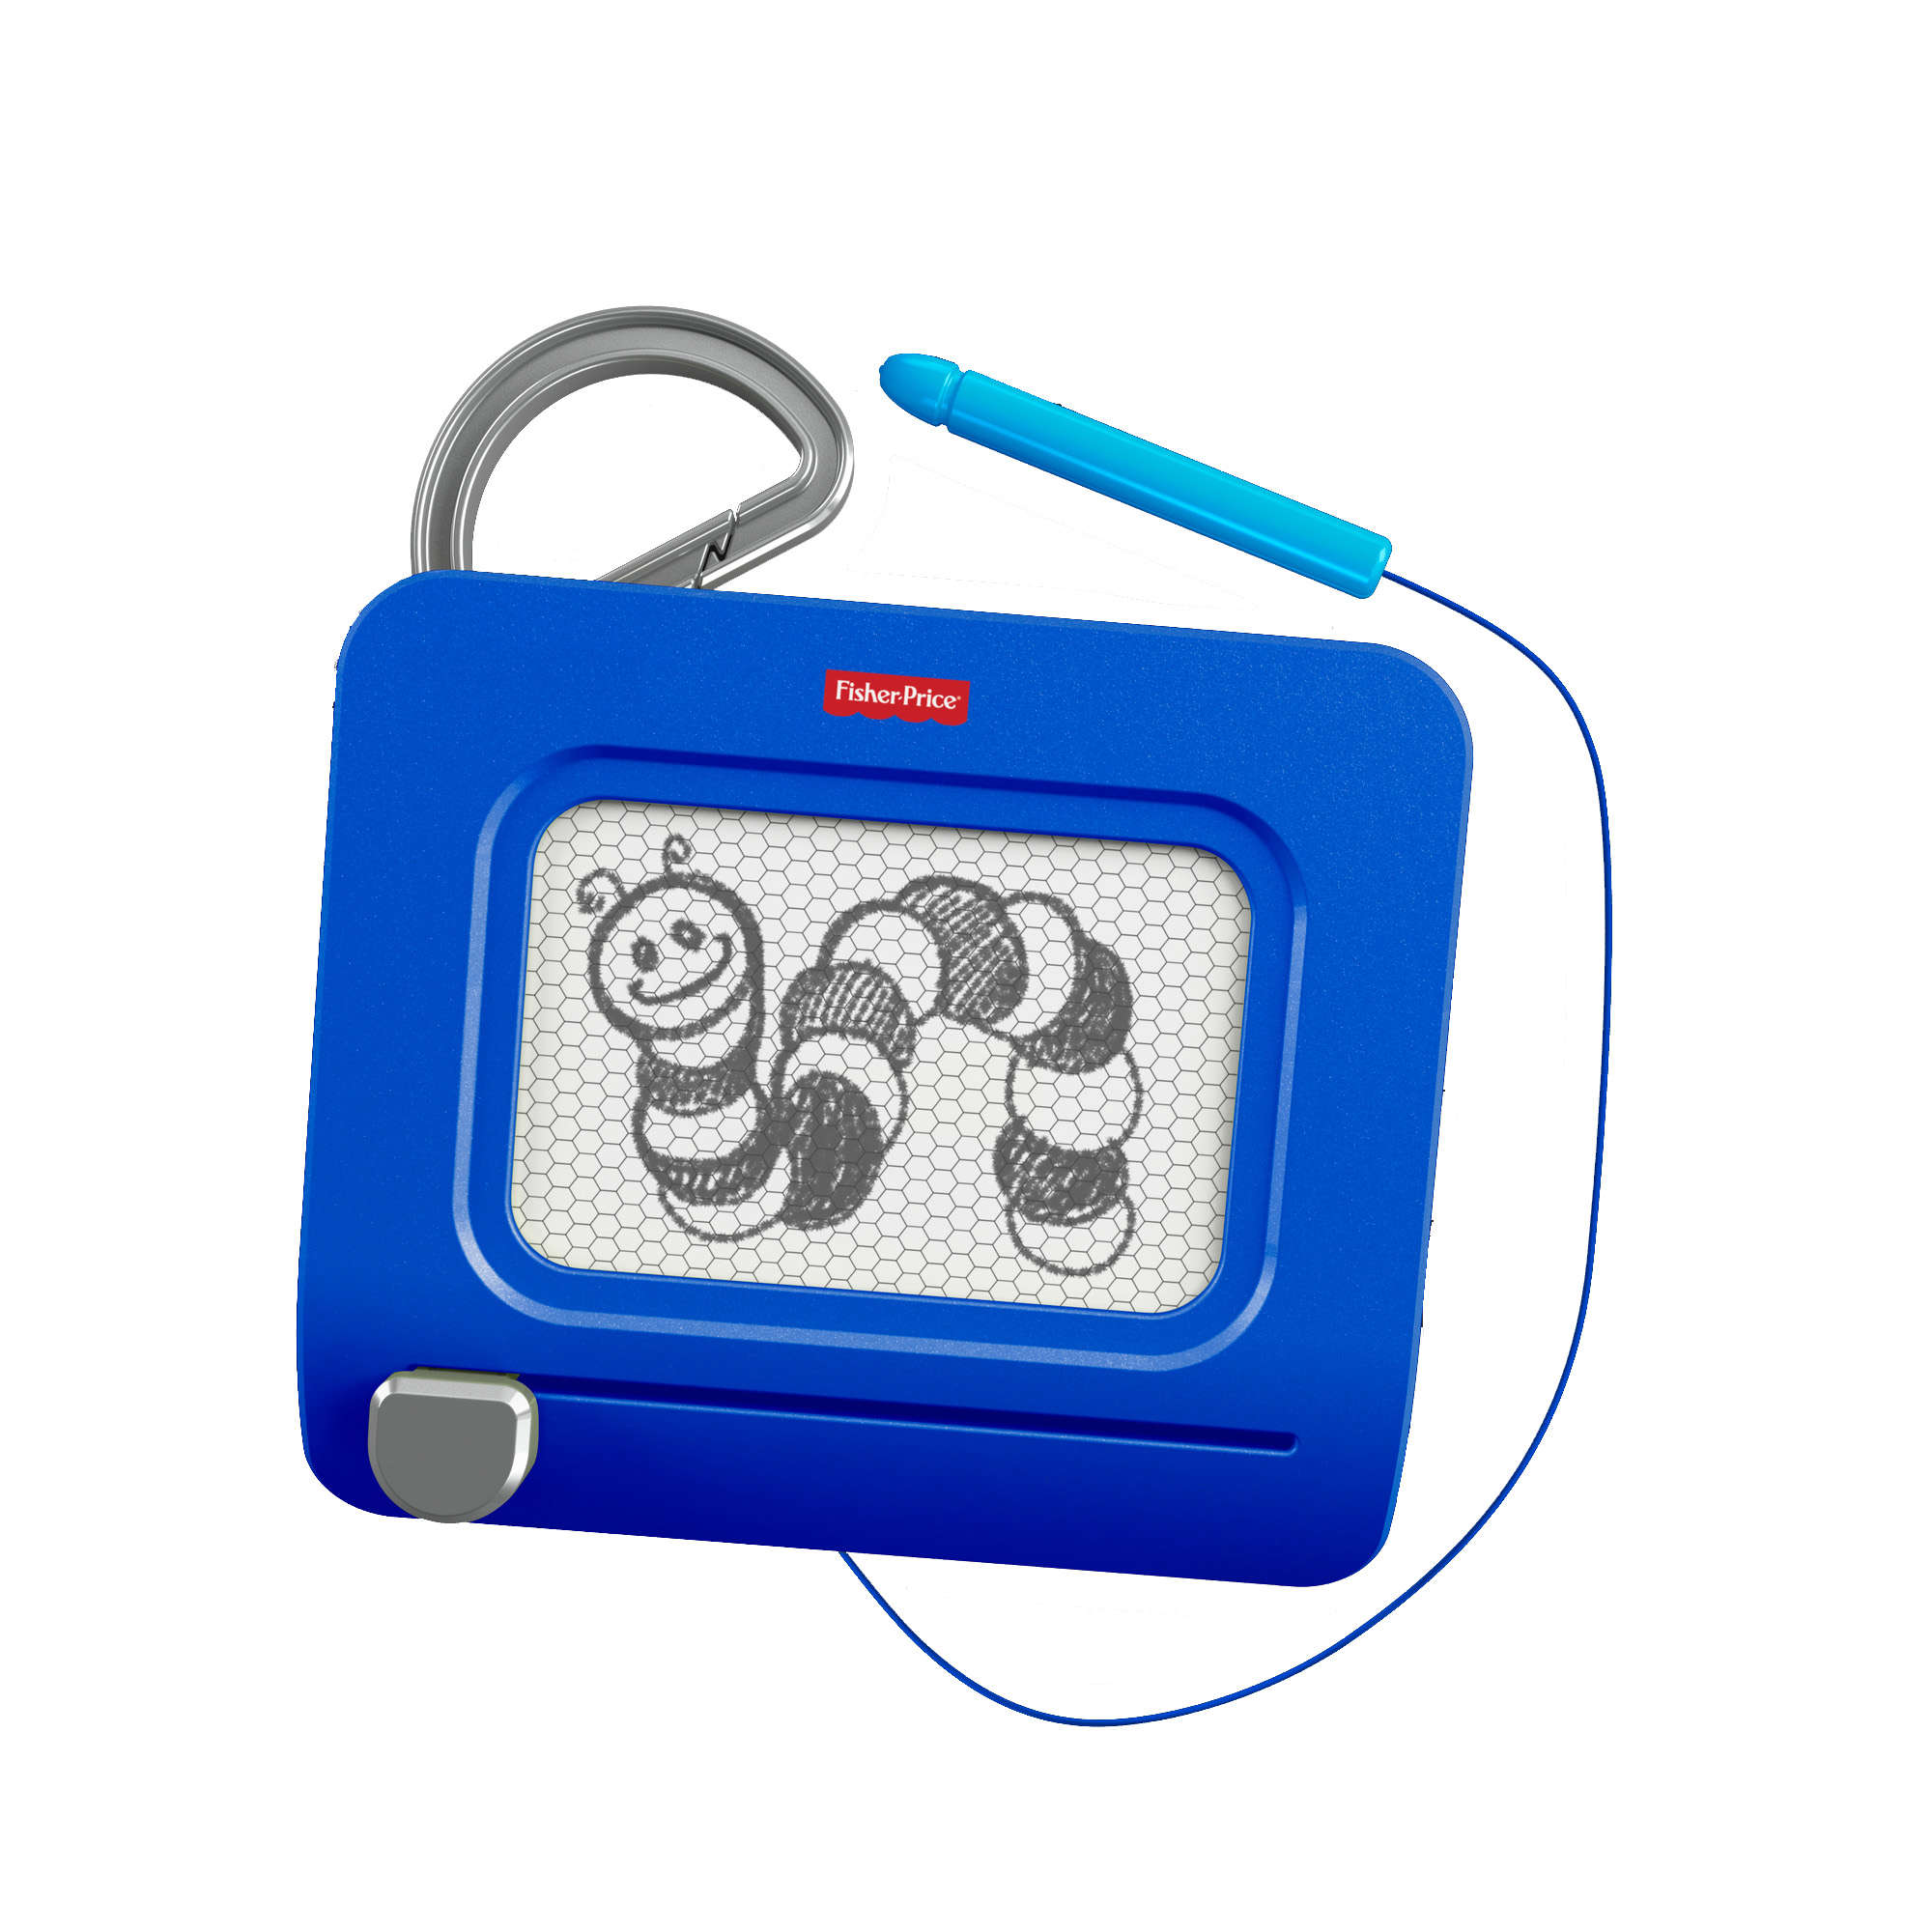 Fisher-Price Doodle Pro Clip, Blue